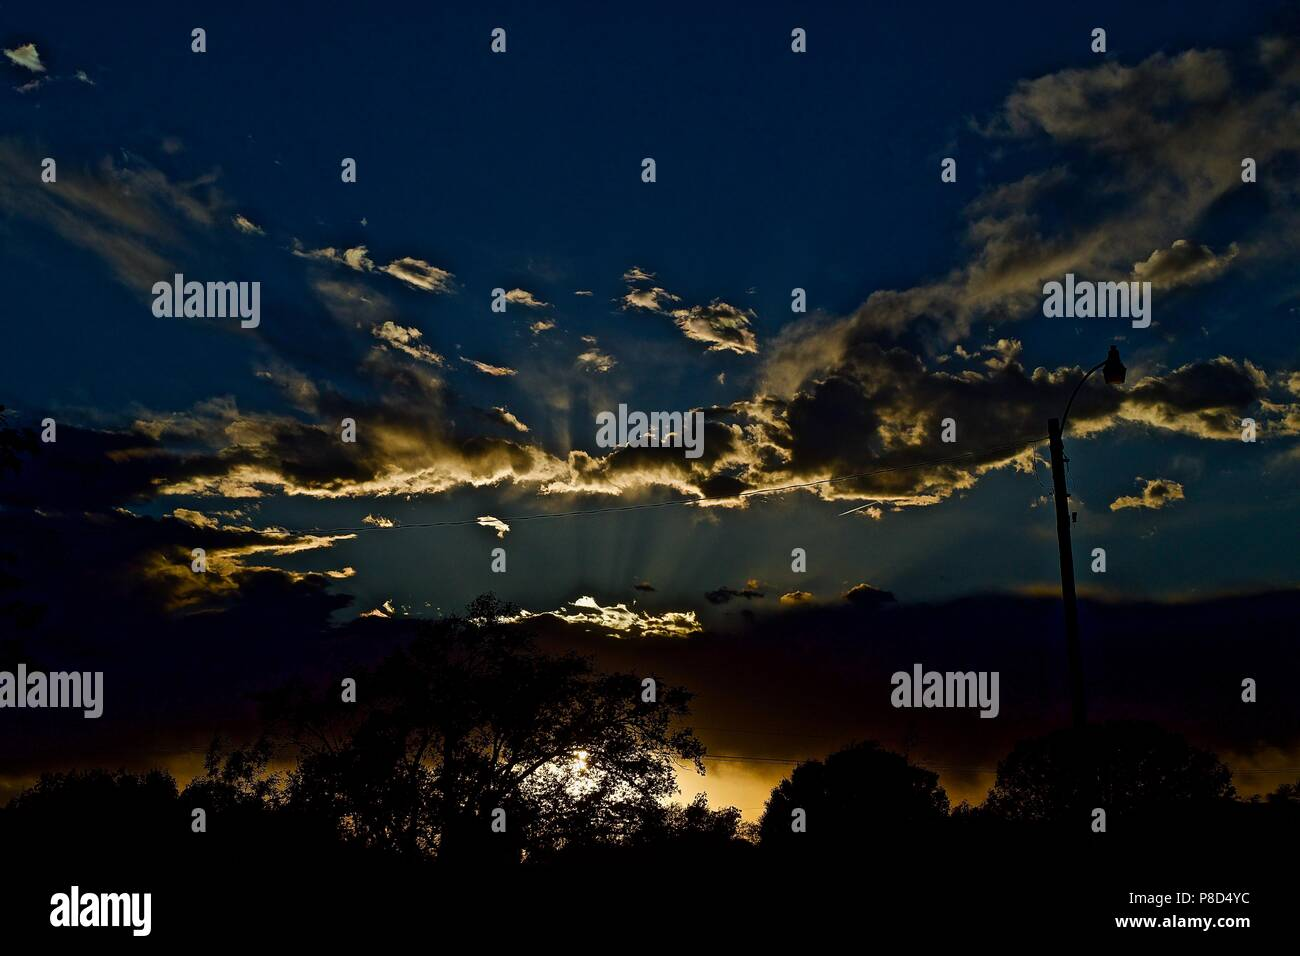 Sunset and Clouds over Canyon, Texas Stock Photo